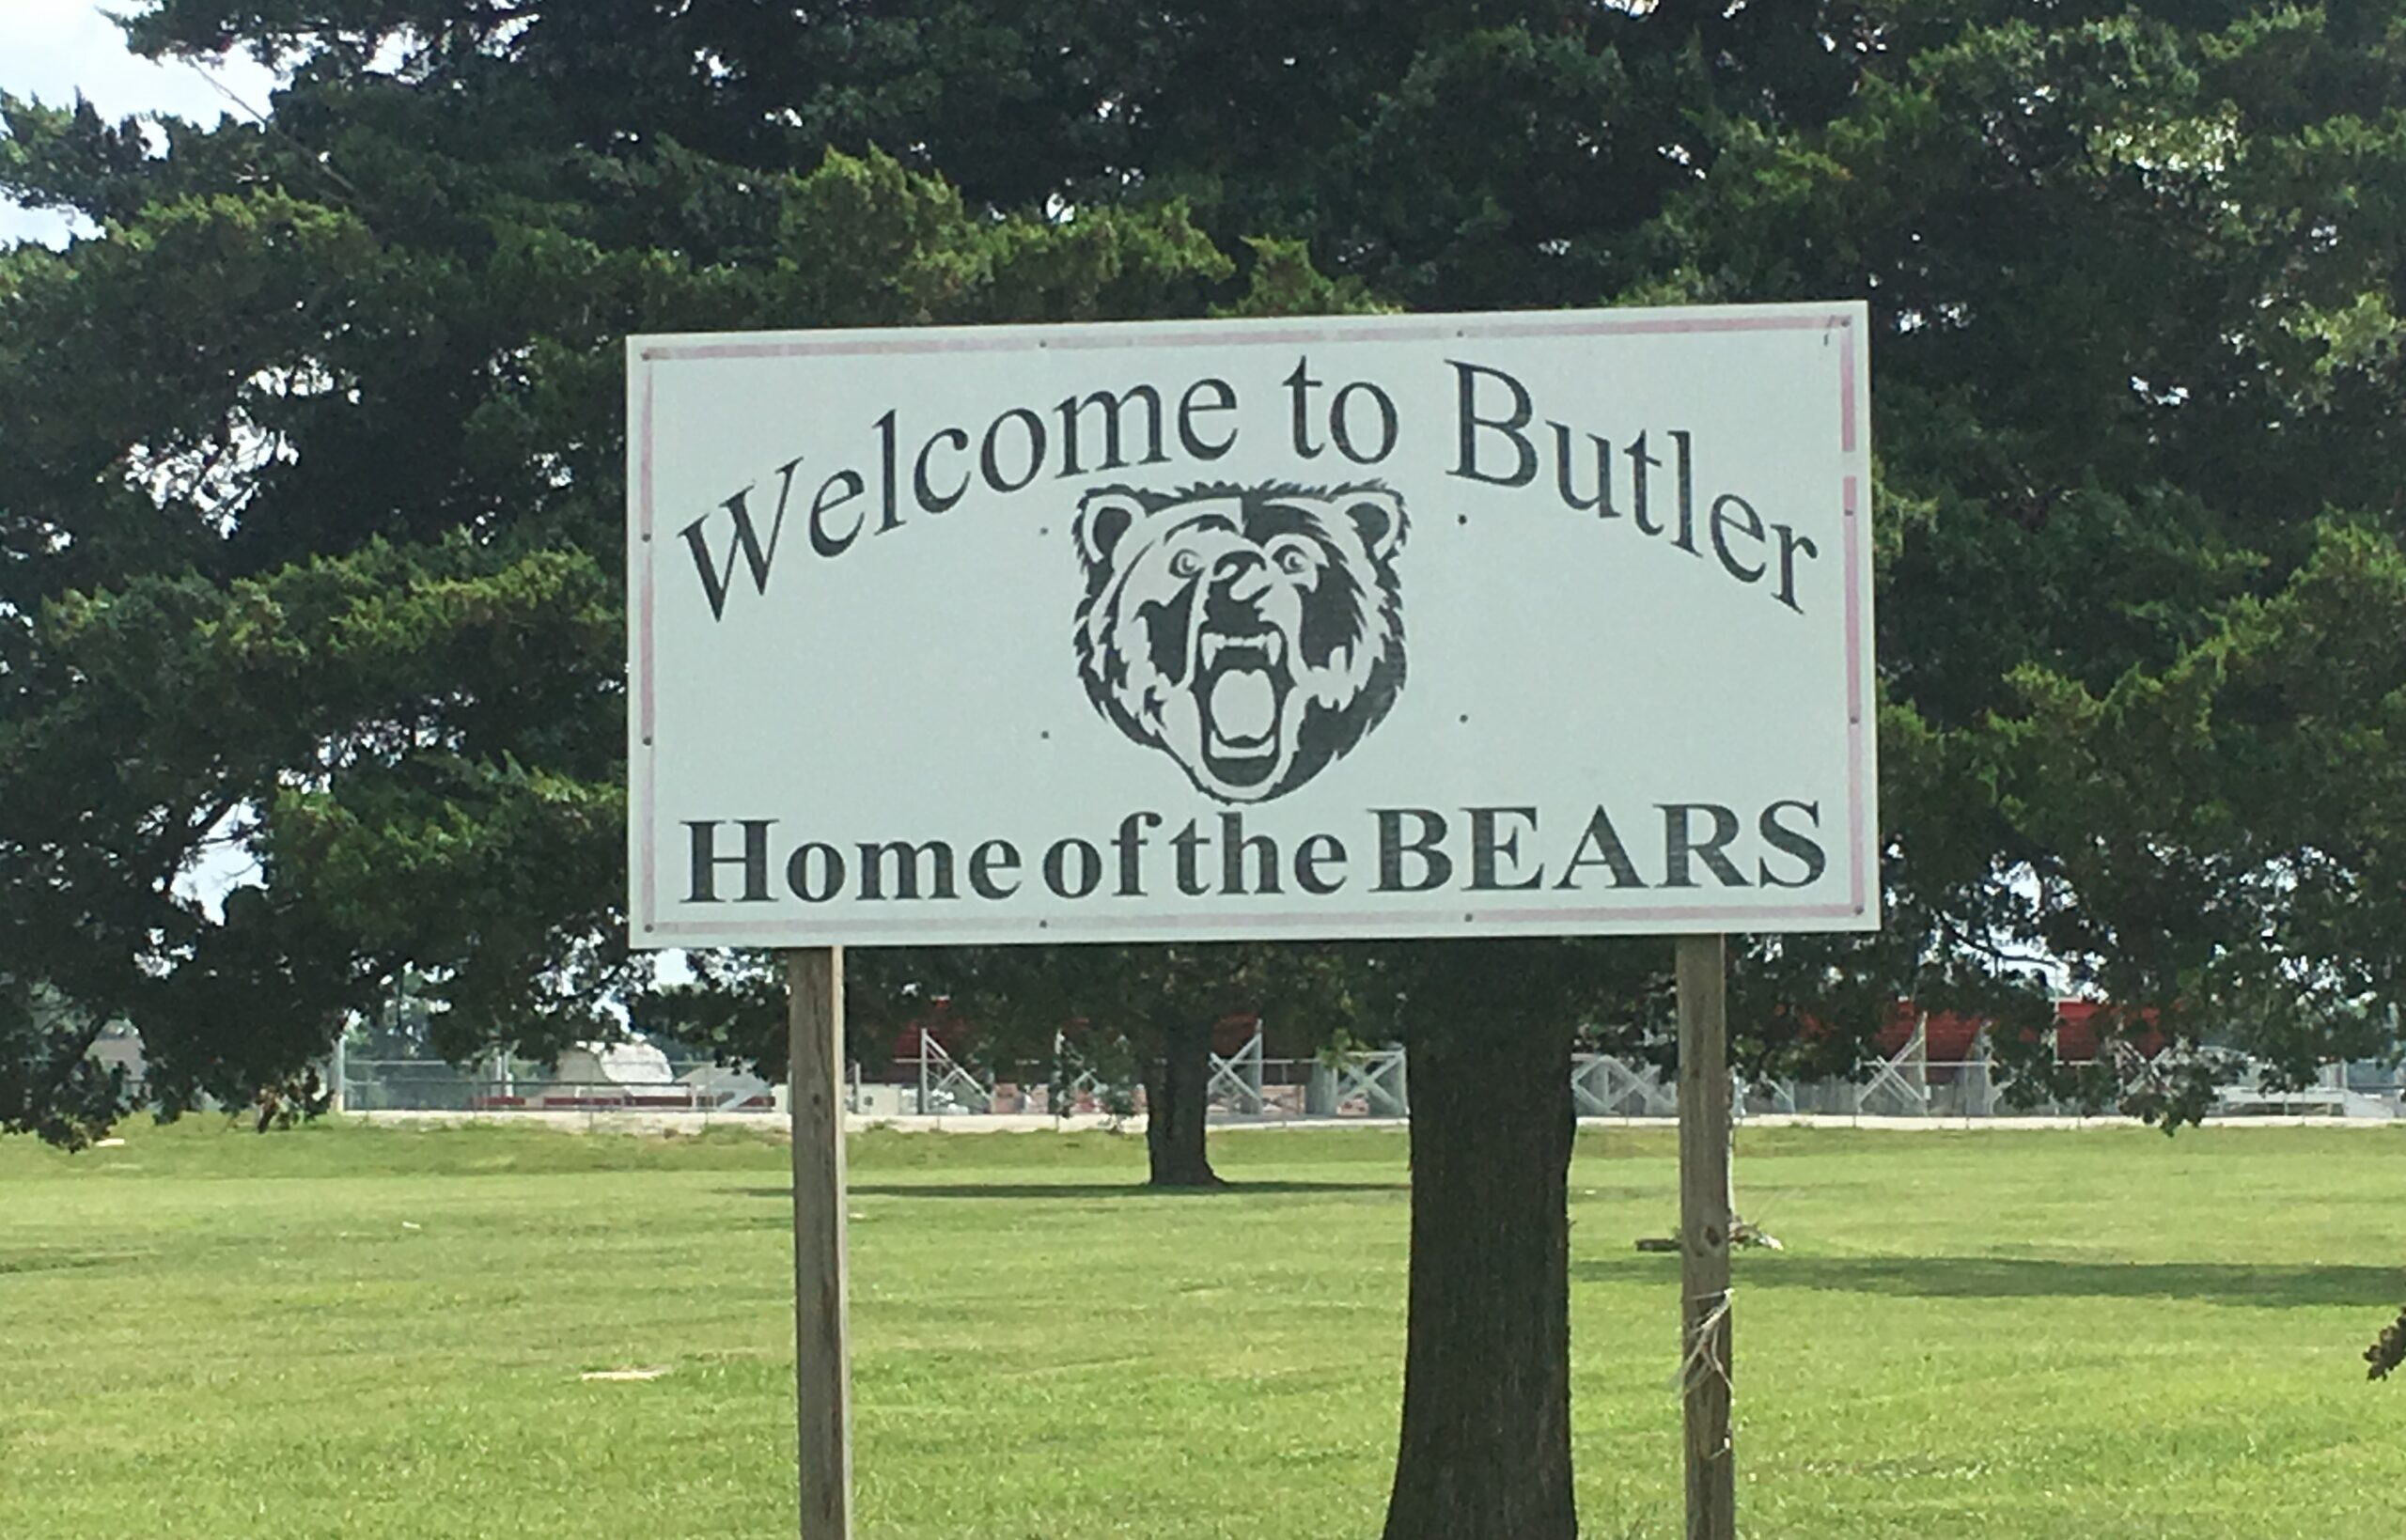 City of Butler